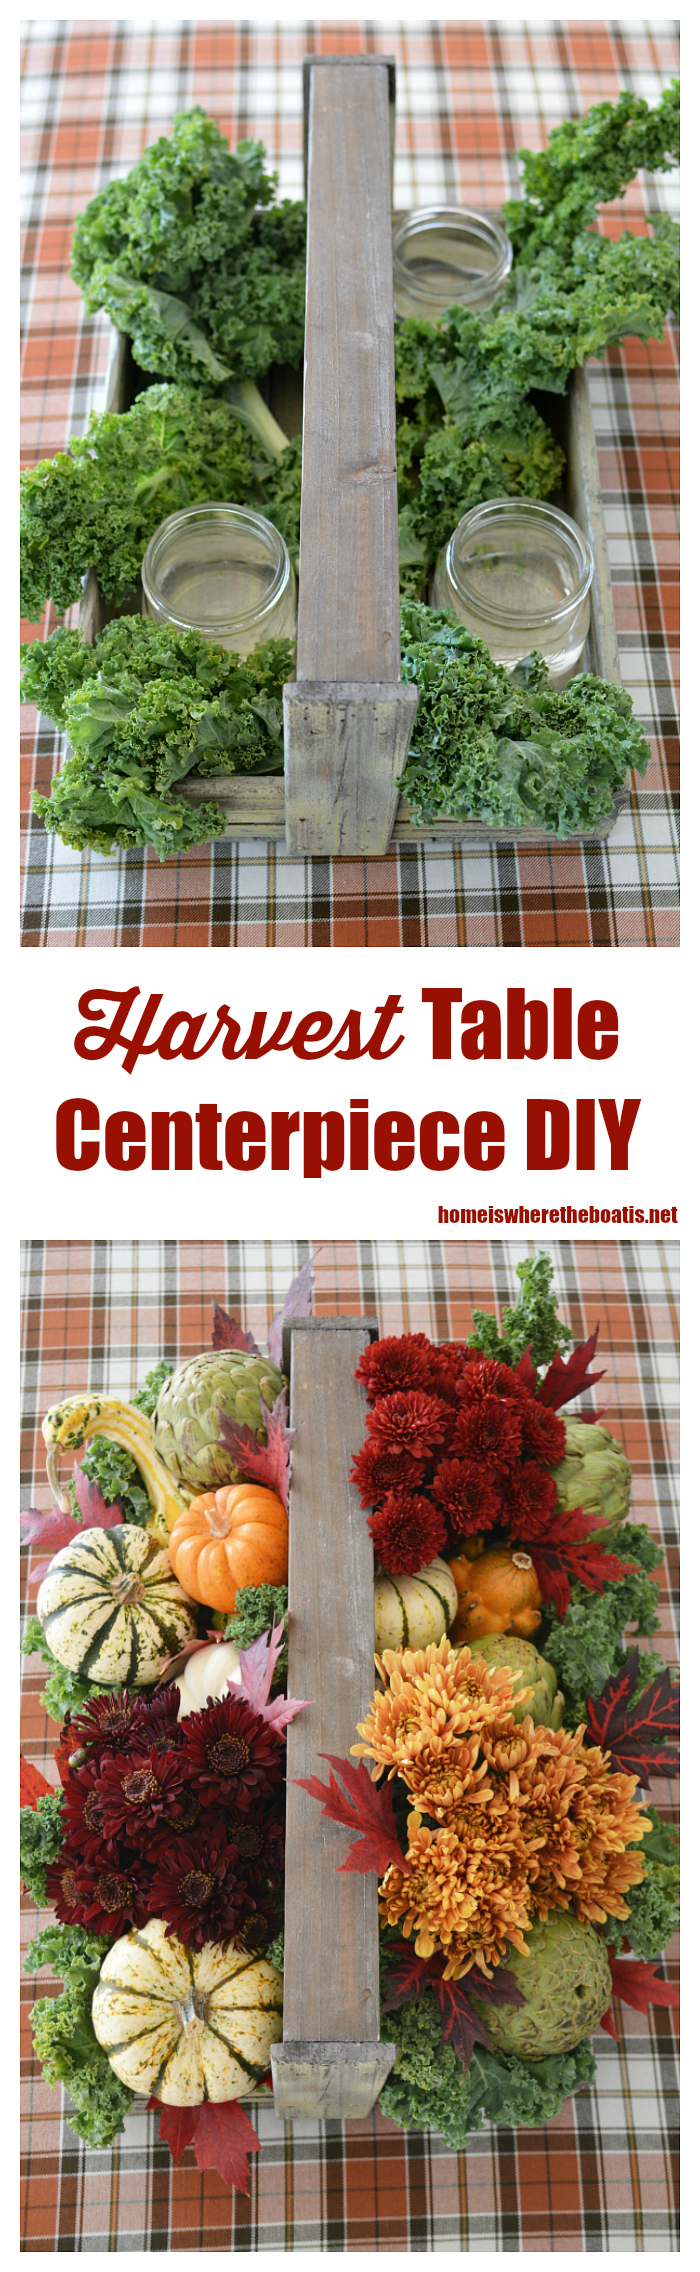 harvest-centerpiece-diy